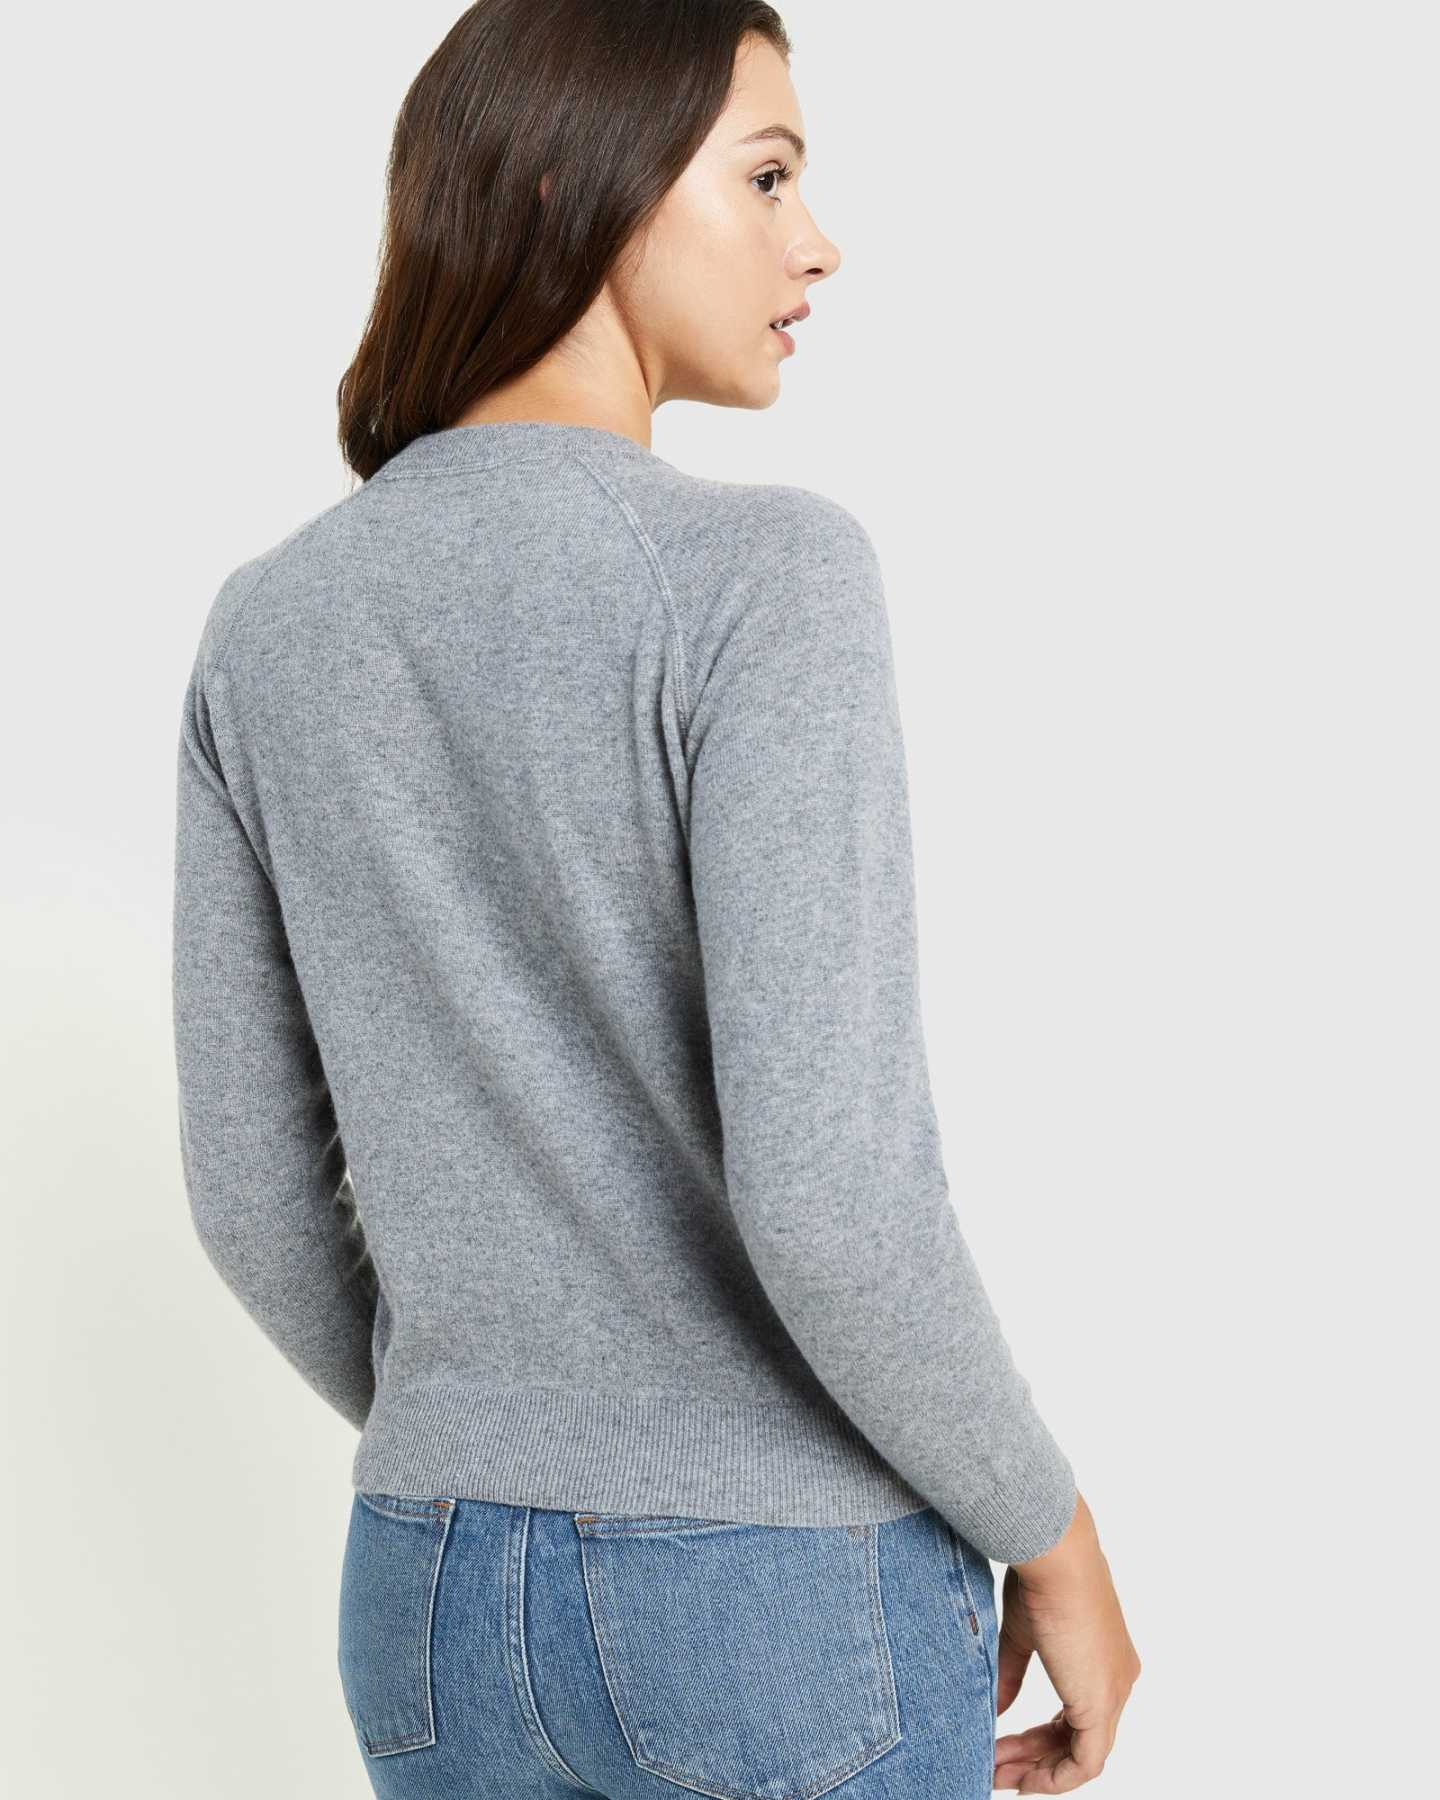 grey cashmere sweatshirt for women back